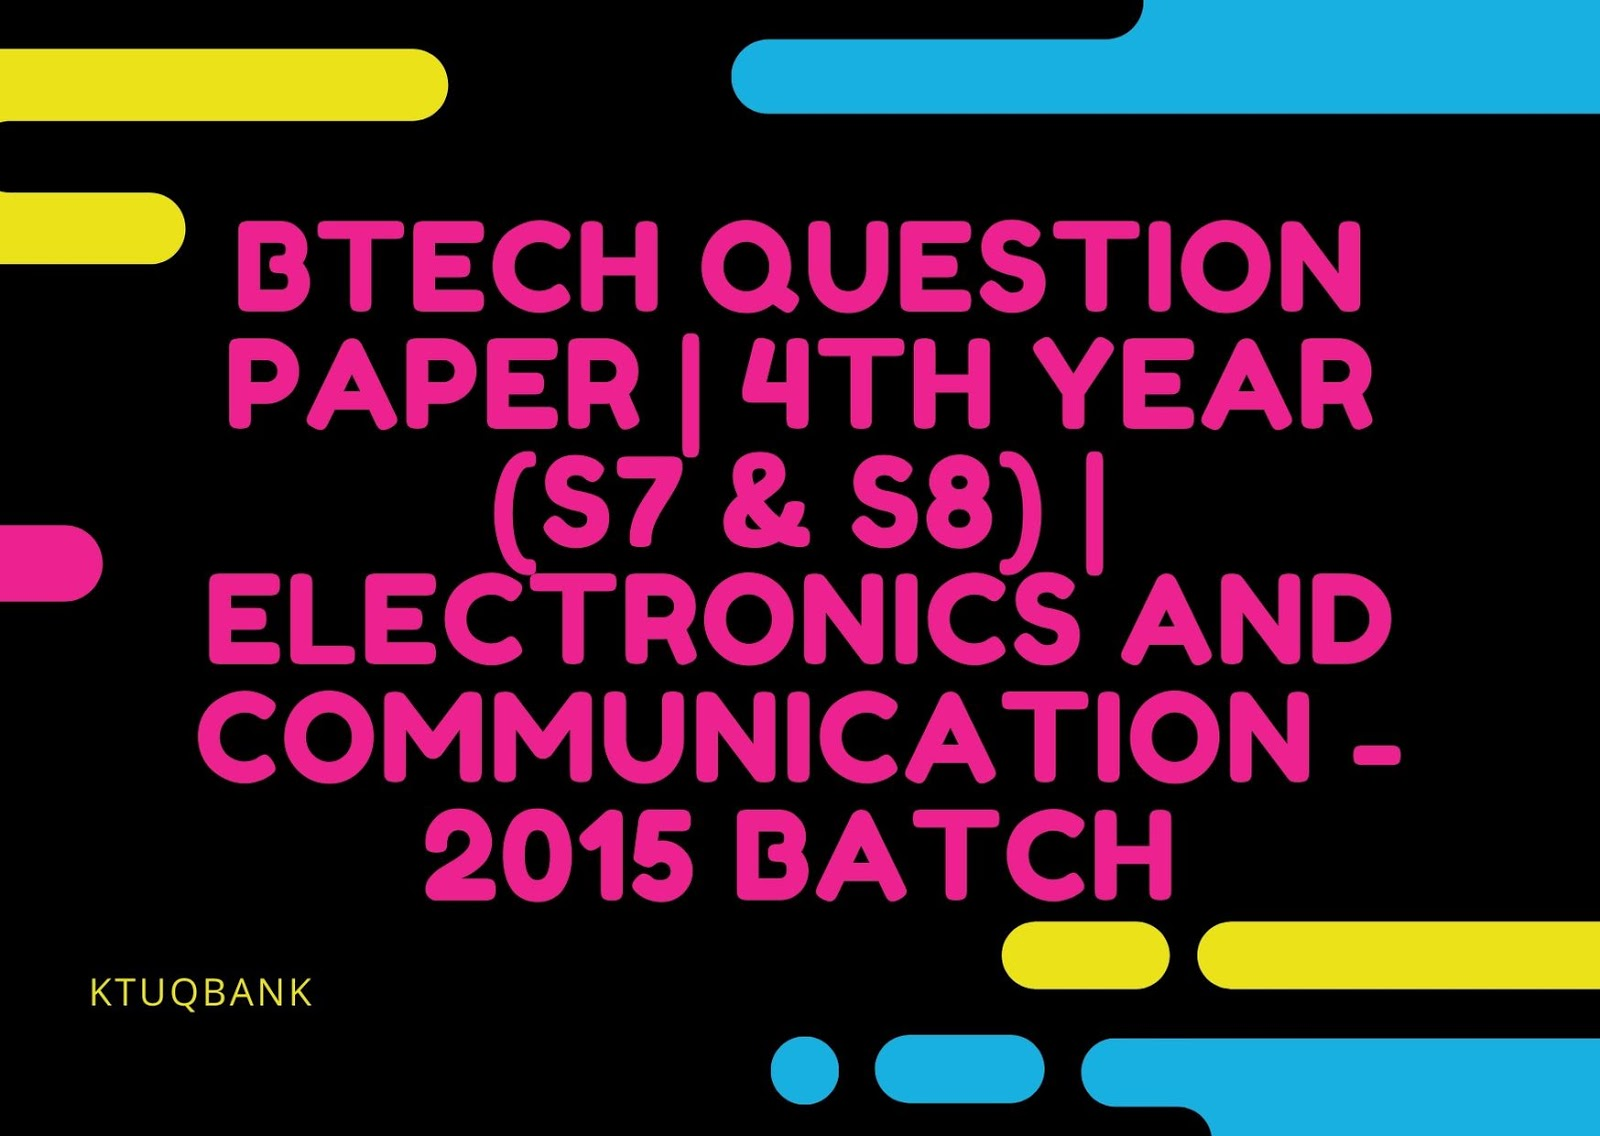 BTech Question Paper | 4th Year (S7 & S8) | Electronics And Communication Engineering - 2015 Batch